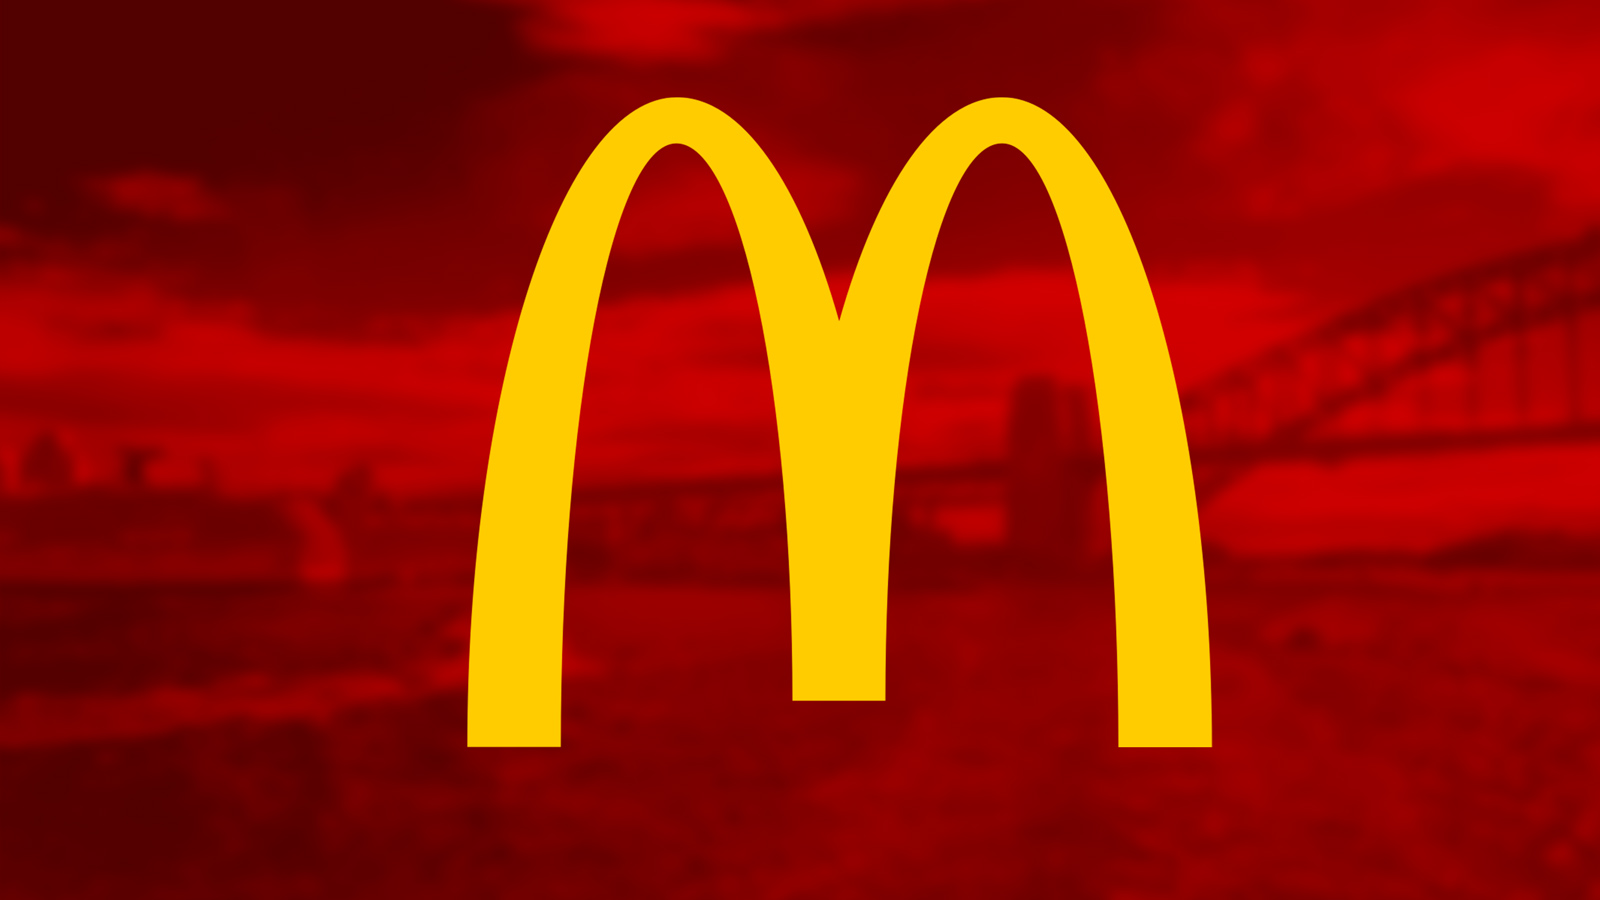 marketingmacdonaldsaus.jpg